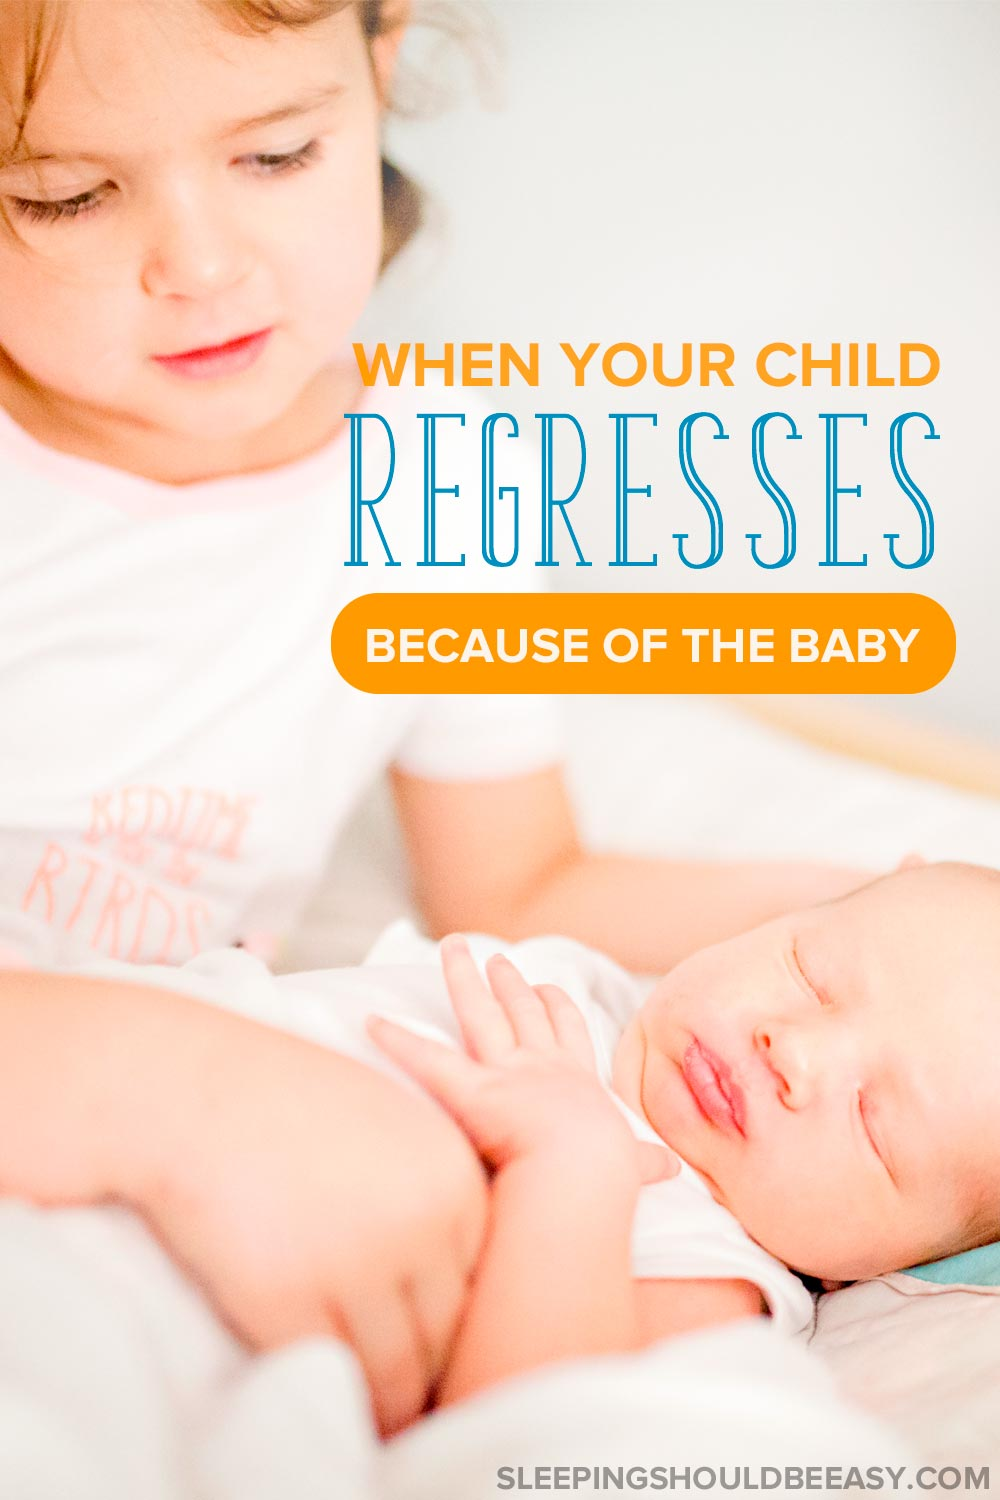 Has your older child regressed with the arrival of a new baby sibling? Learn what to do when your child regresses because of new baby jealousy.